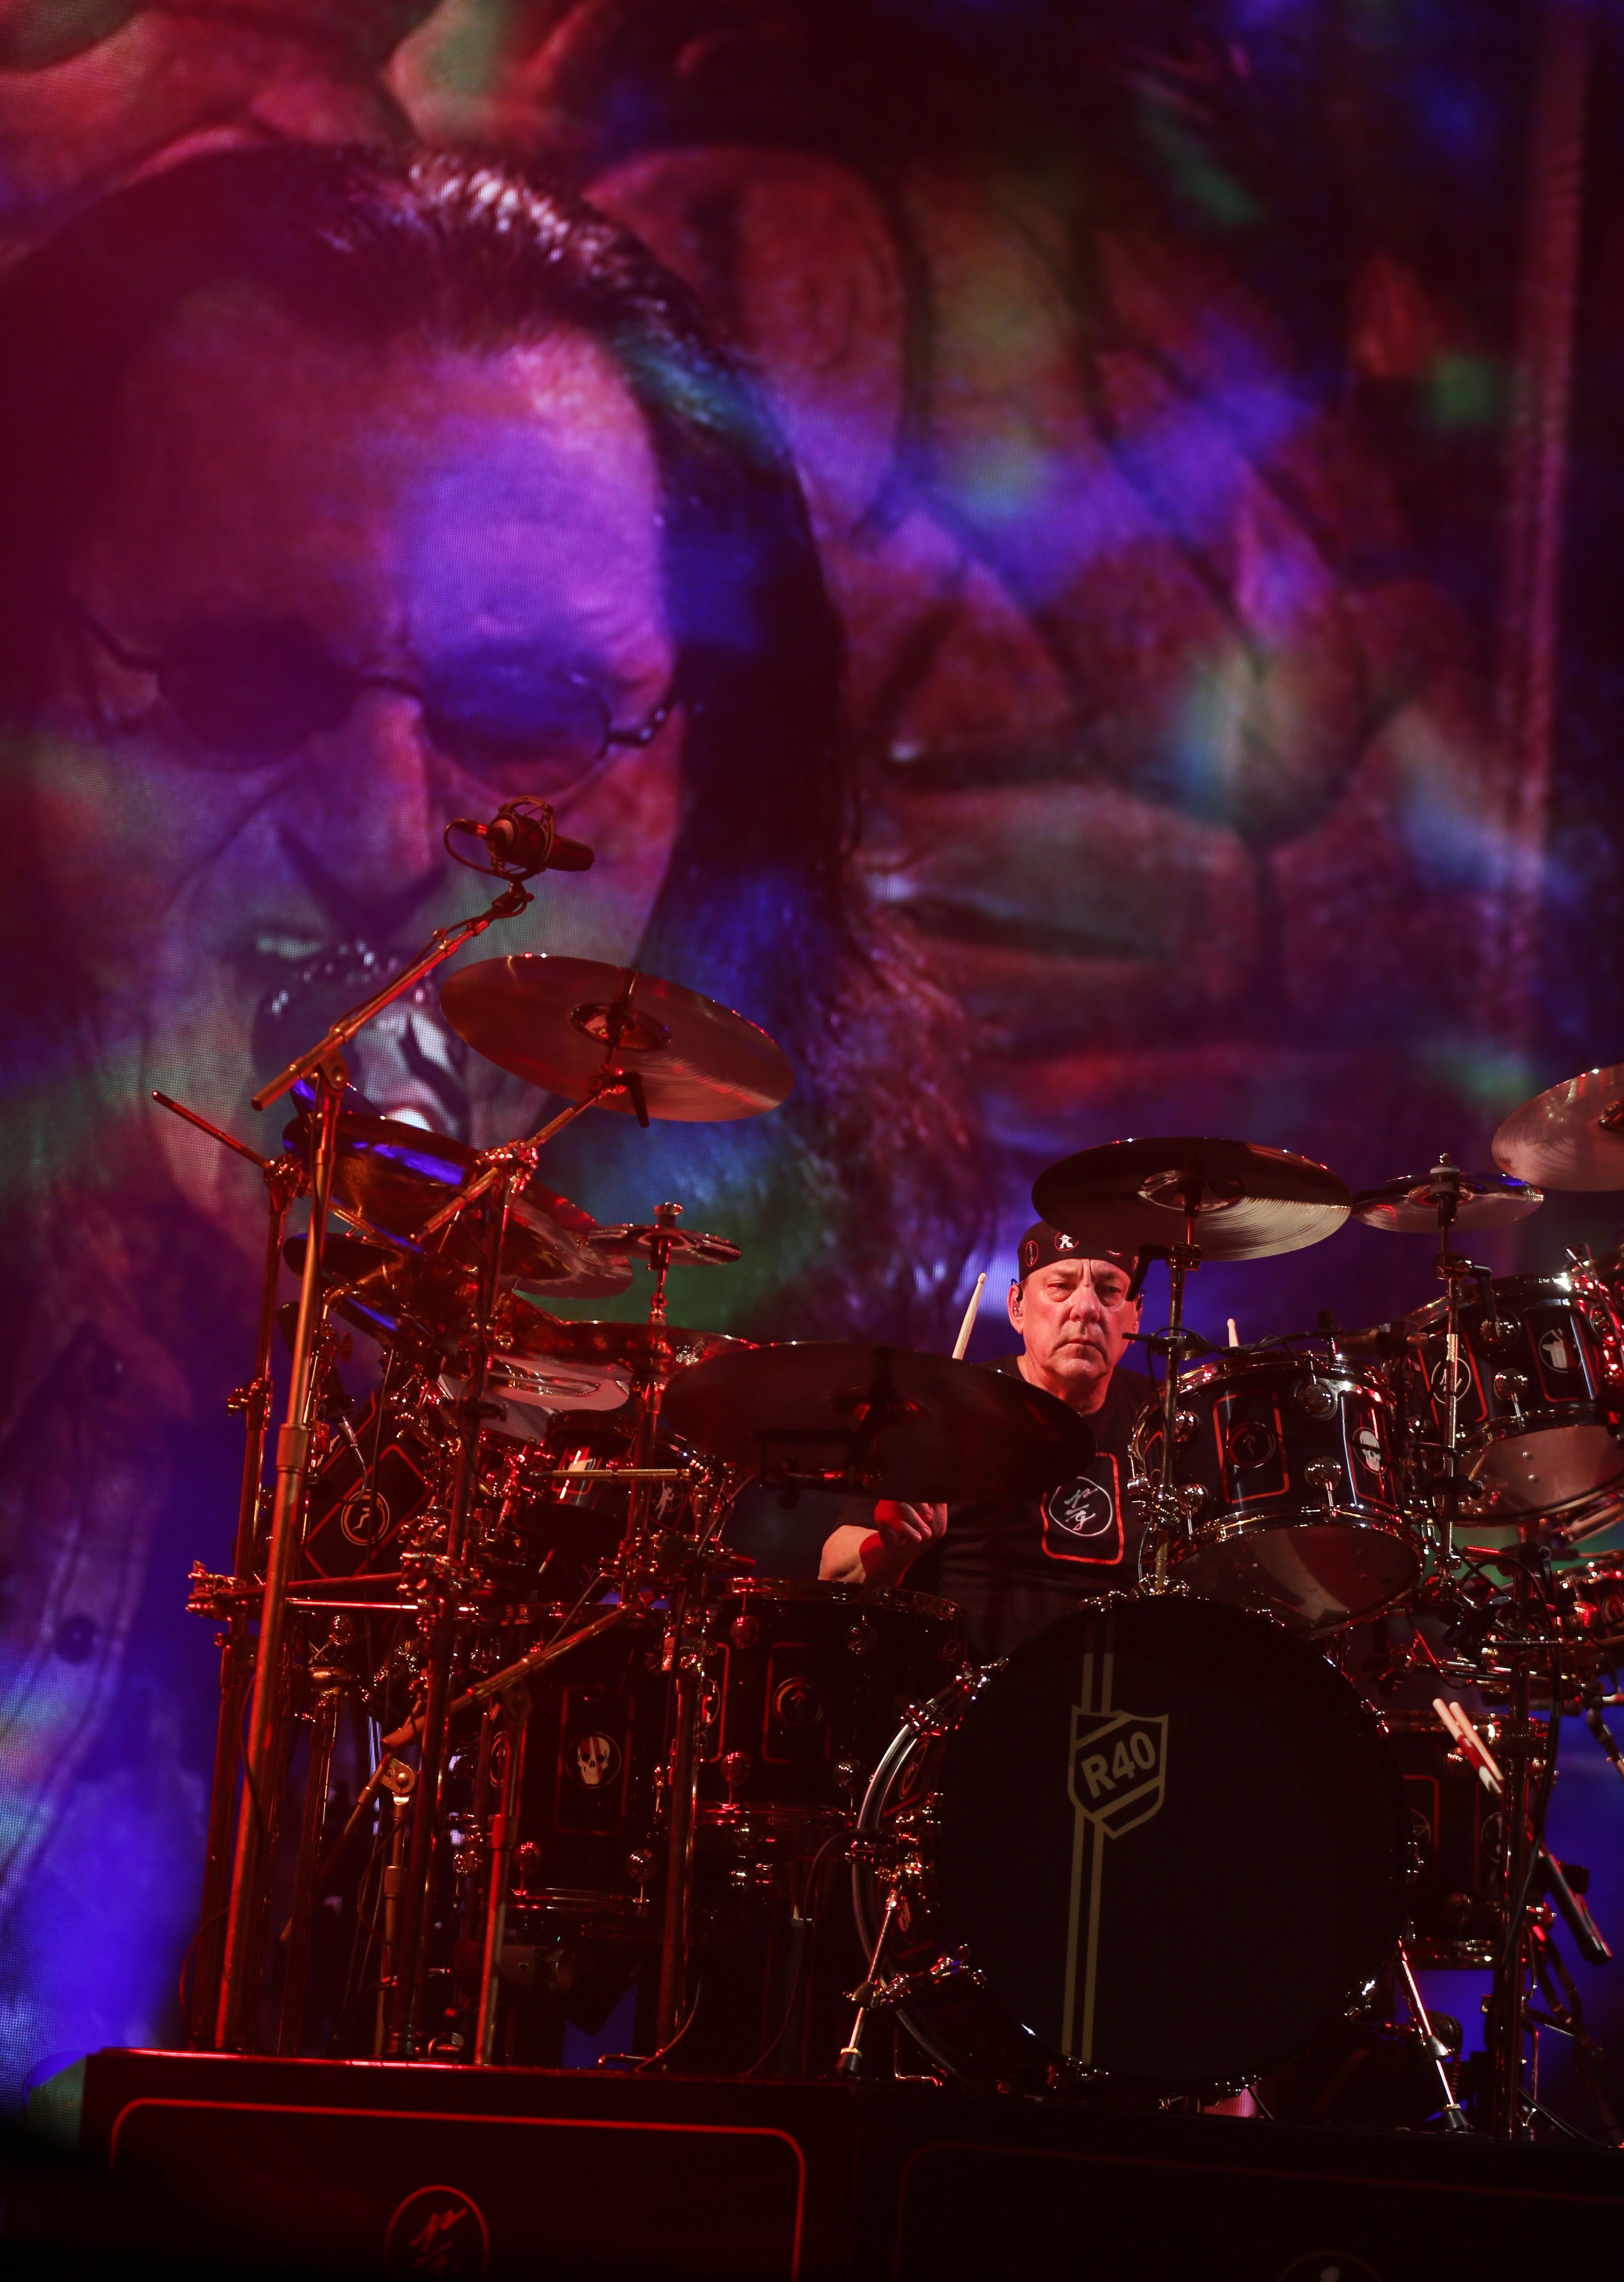 Rush played to a sold-out crowd at the First Niagara Center Wednesday as part of their R40 Tour. Neil Peart is on drums. Geddy Lee is on the screen behind him. See concert gallery at BuffaloNews.com.